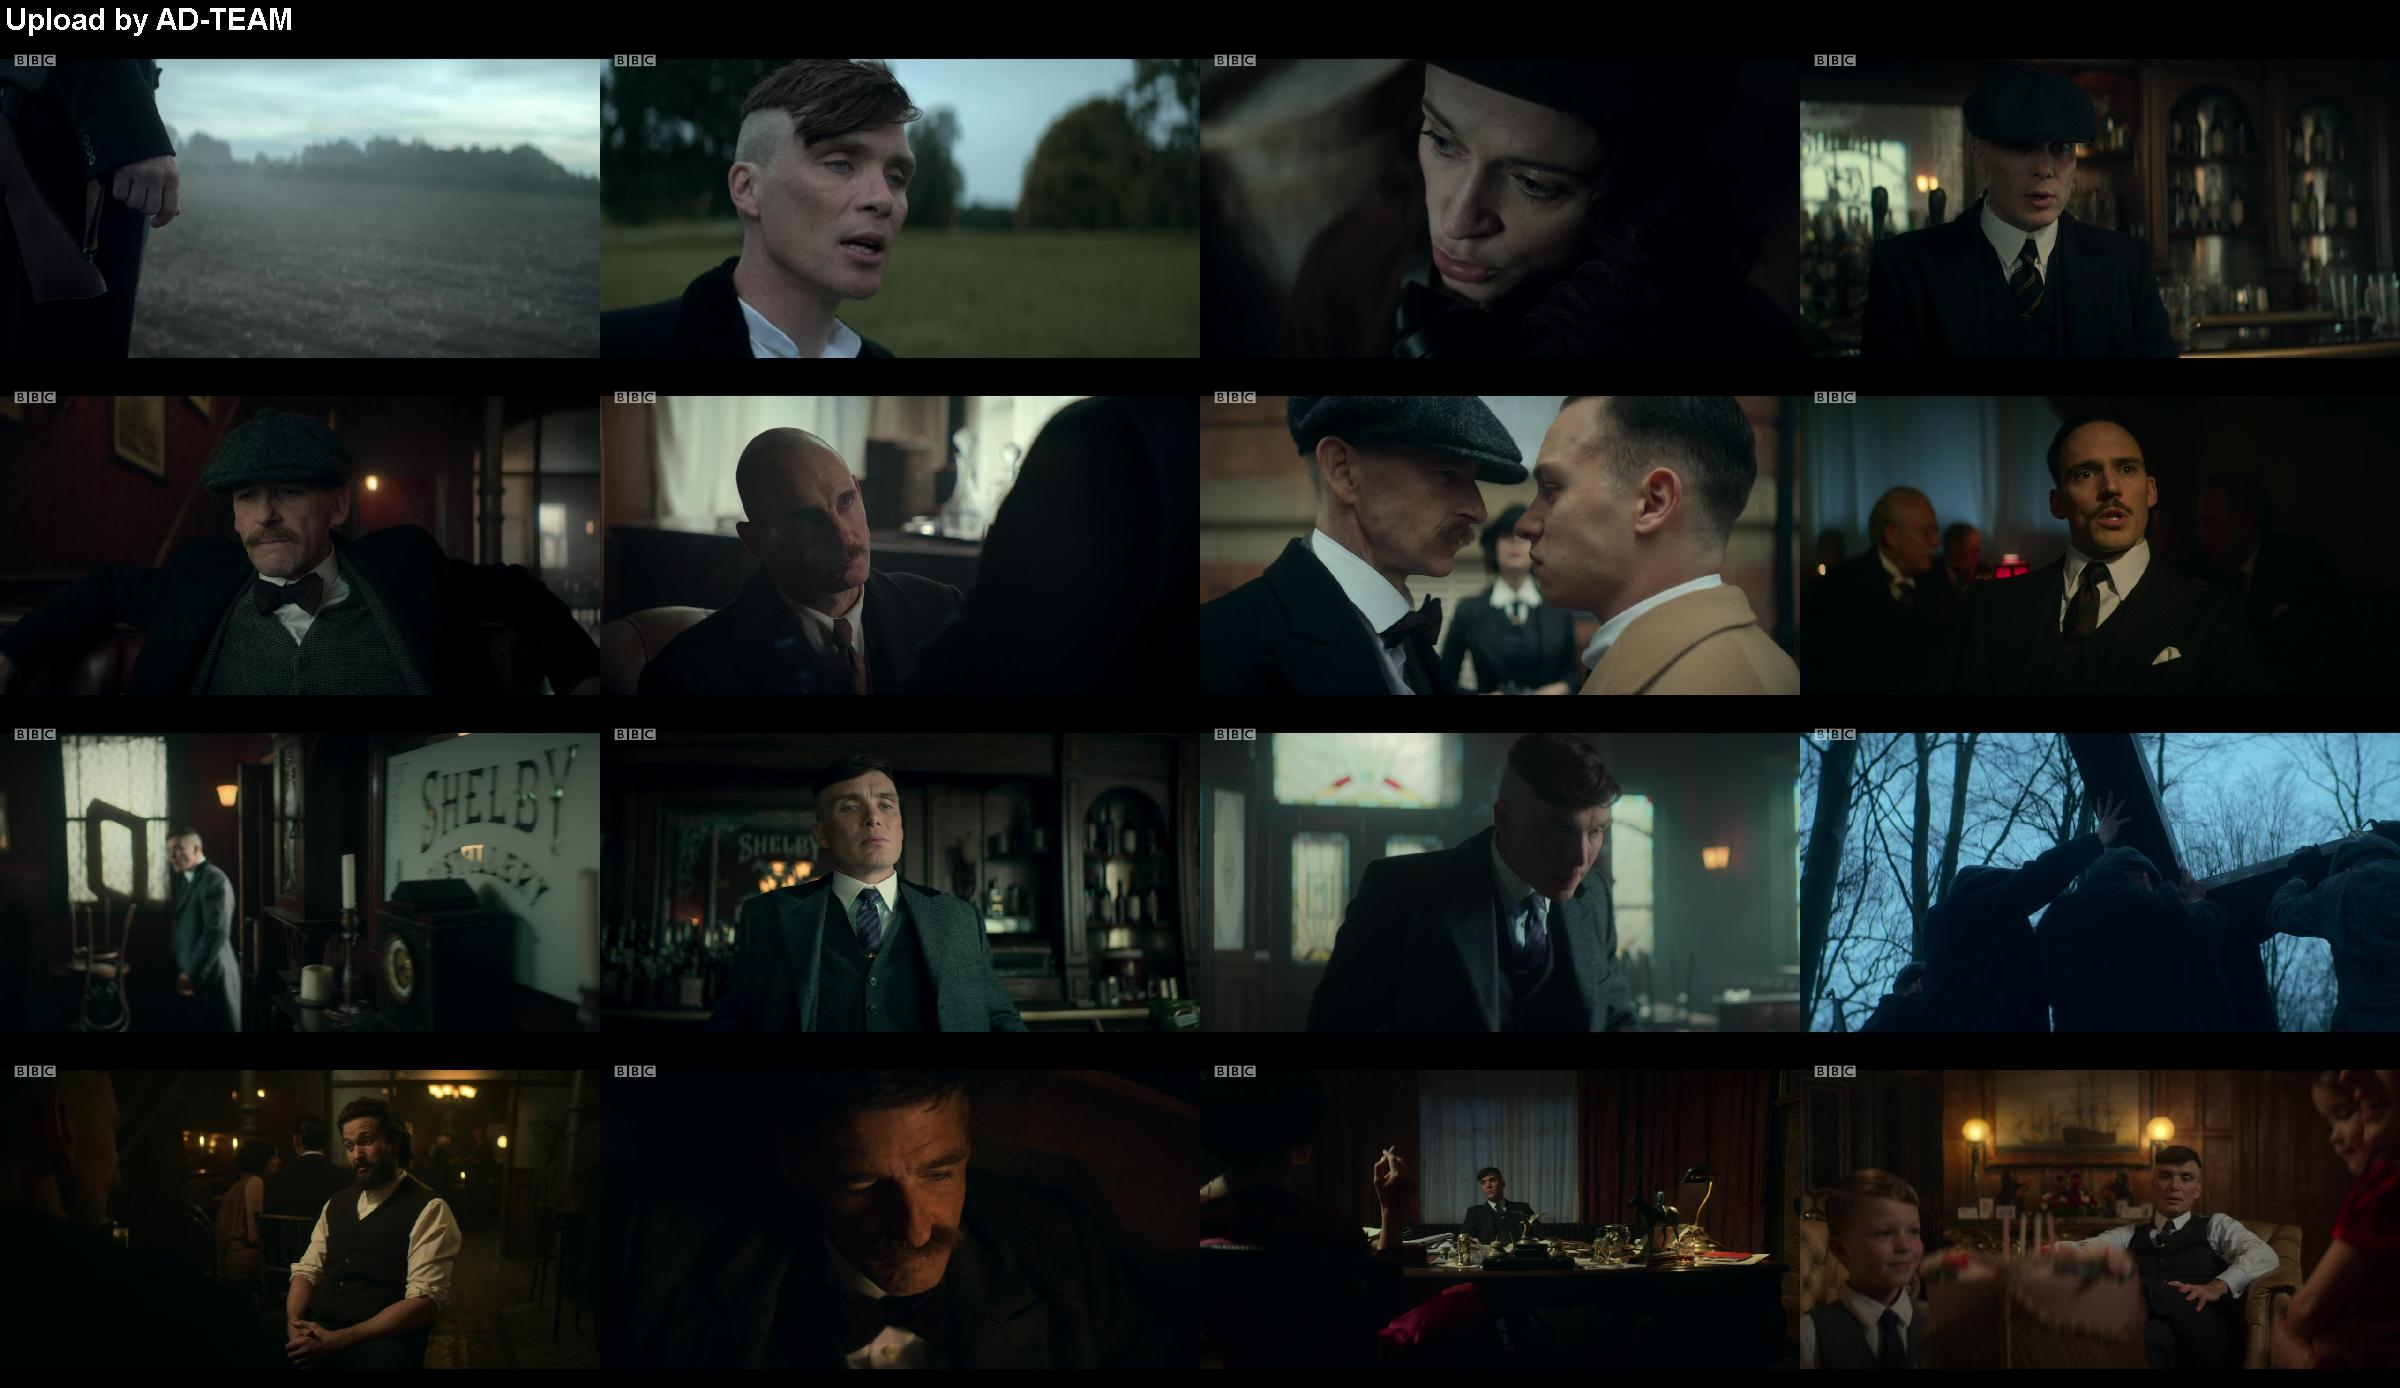 Peaky Blinders S05e02 720p Ip Web dl Aac2 0 H 264